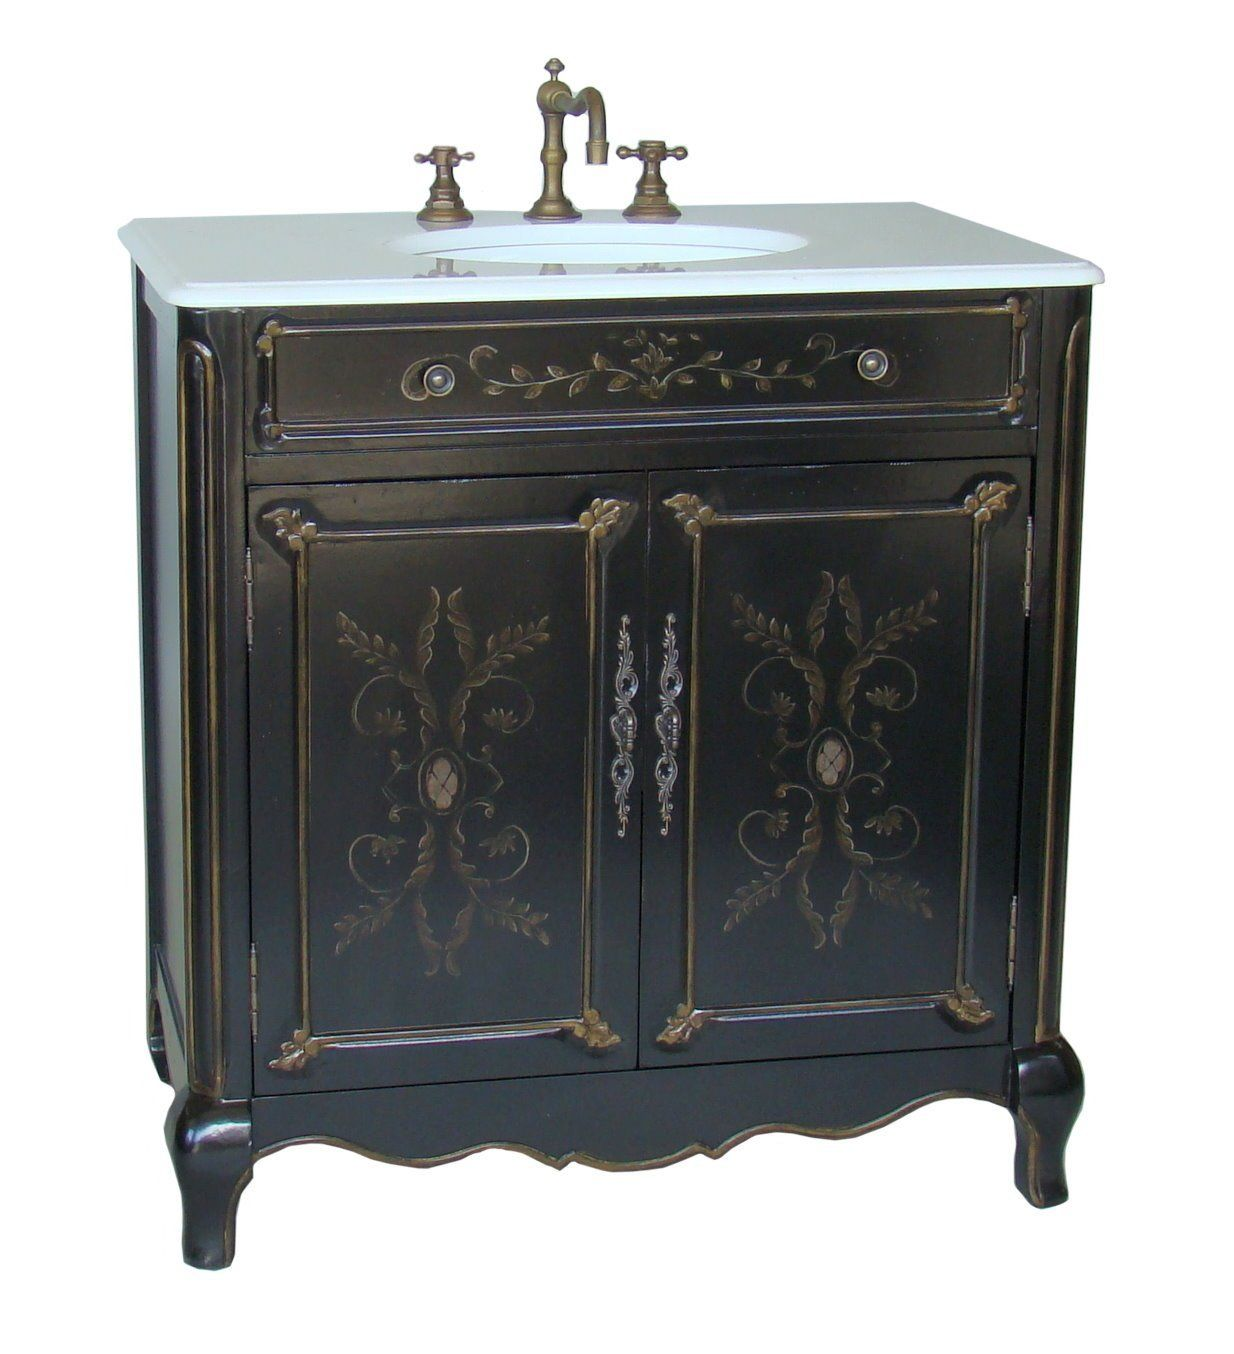 Adelina 32 Inch Cottage Hand Painted Bathroom Vanity, Depth And Richness Of  Our Hand Painted Floral Design Sink Vanity Cabinet Combine Old World  Furniture ...